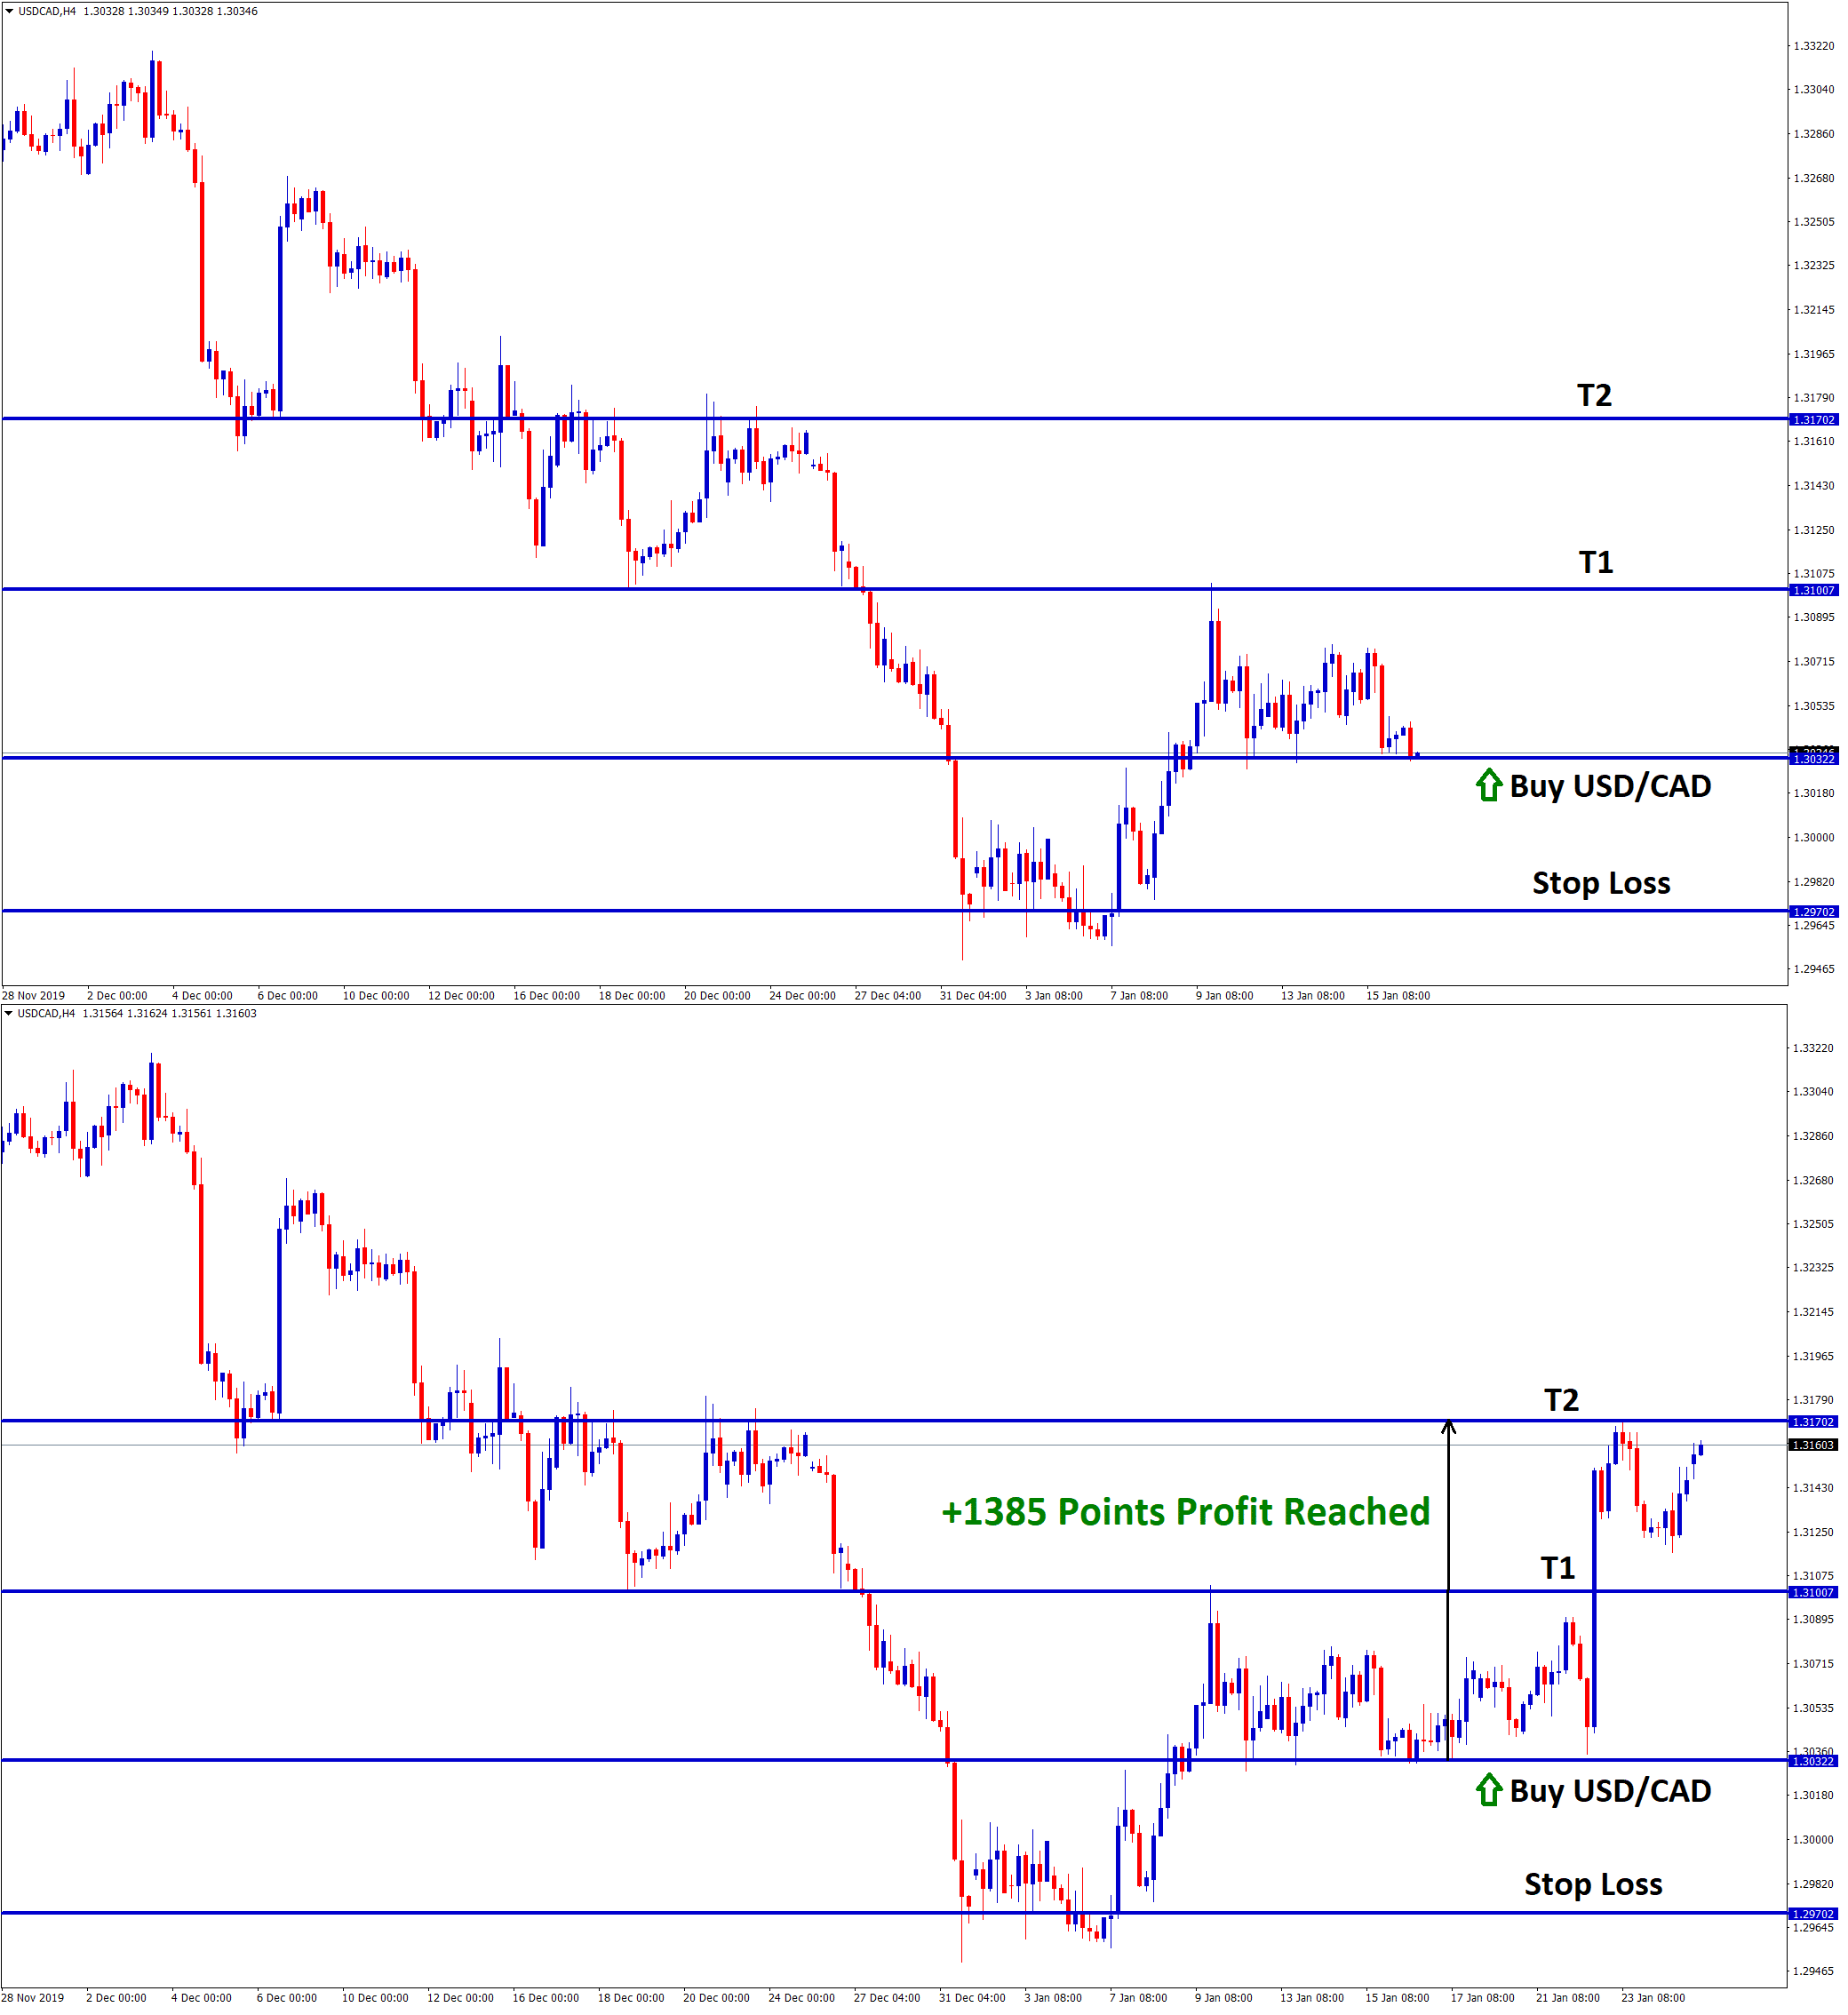 usd cad hits our take profit in buy signal